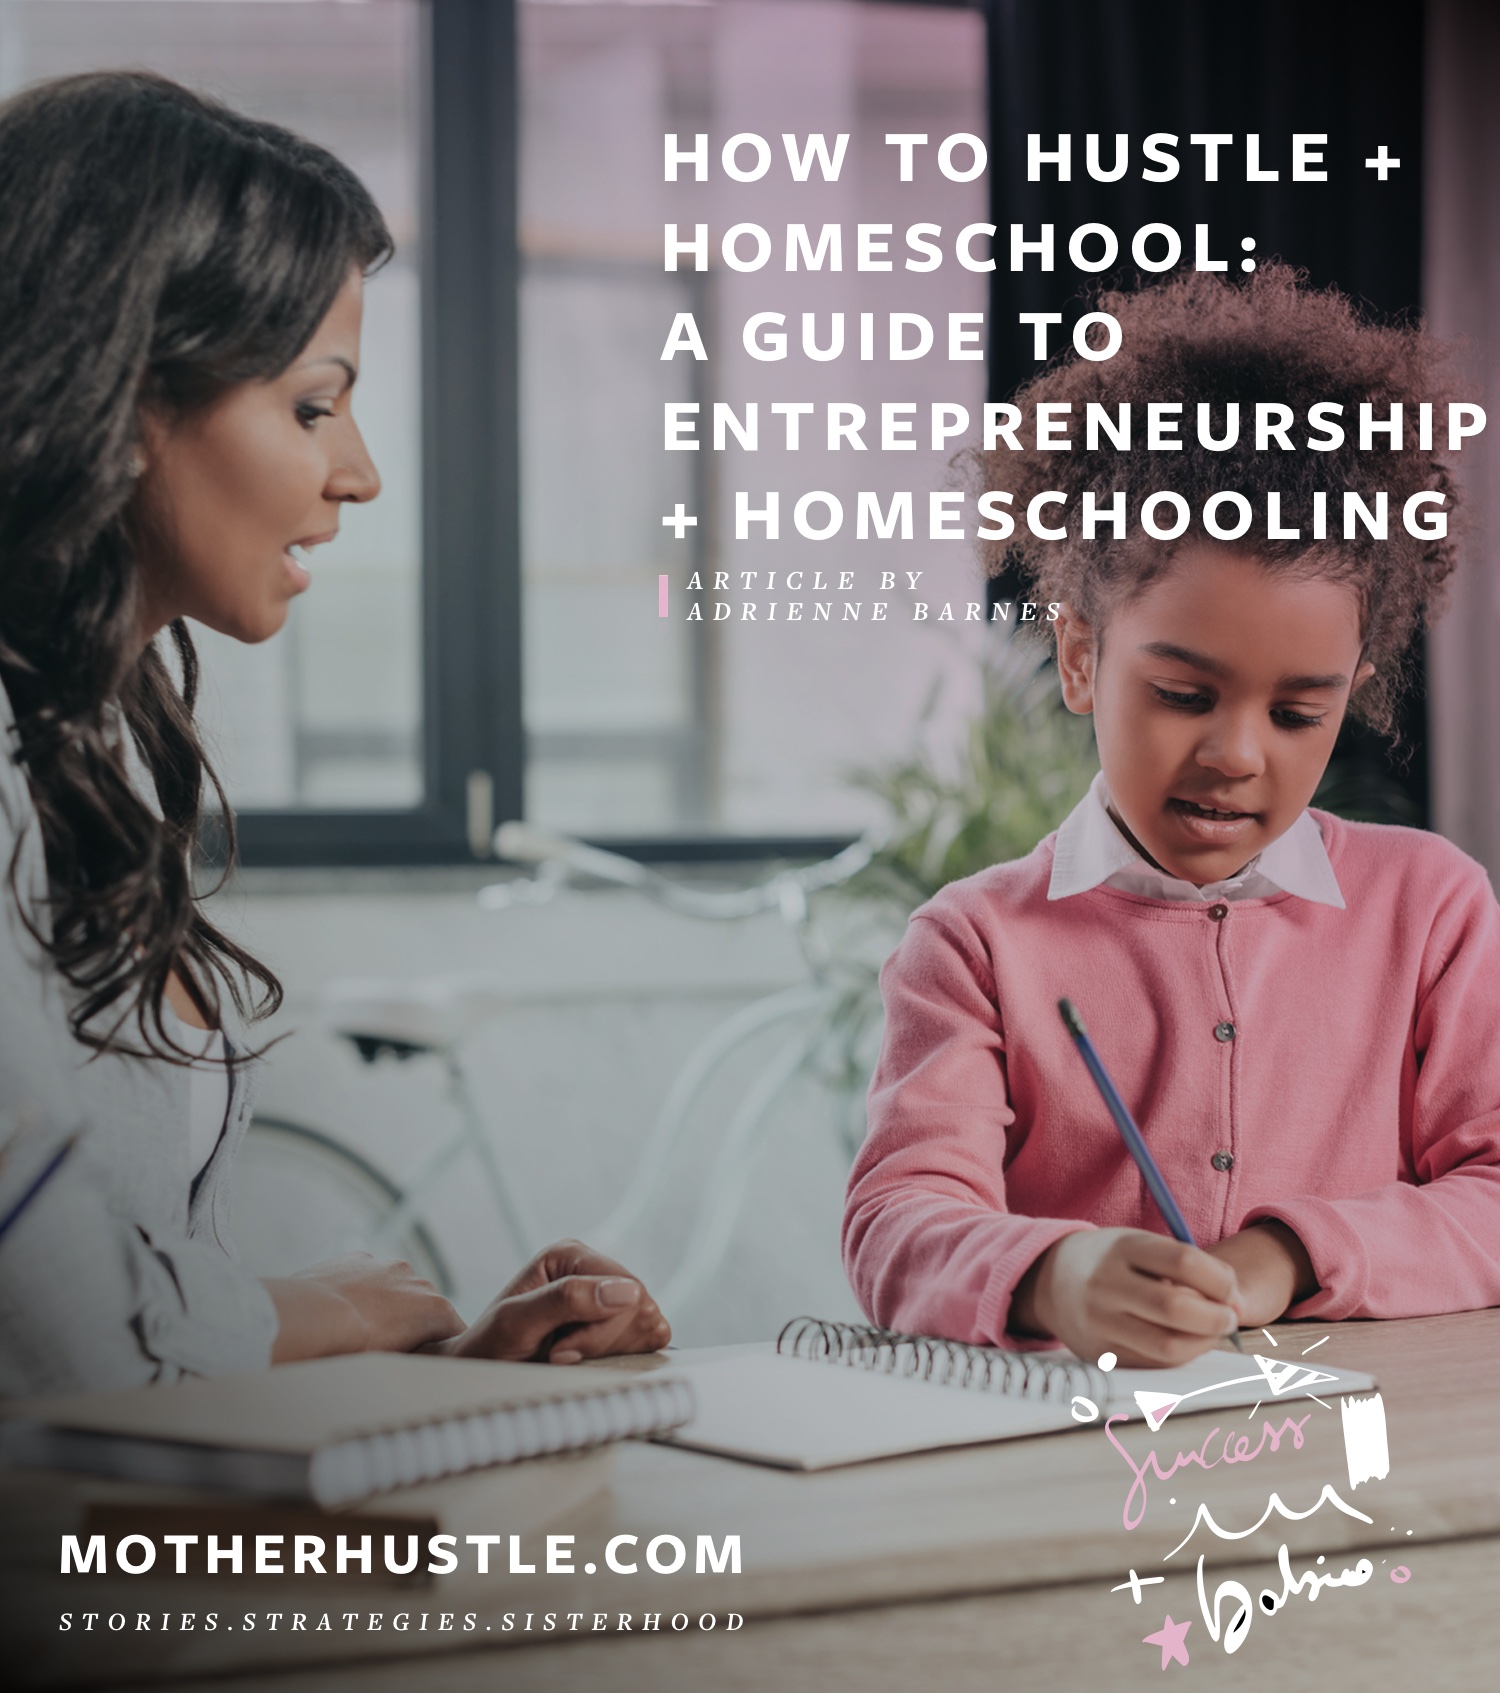 How to Hustle + Homeschool- The MotherHustle's Guide to Entrepreneurship and Homeschooling - BY Adrienne Barnes for MotherHustle